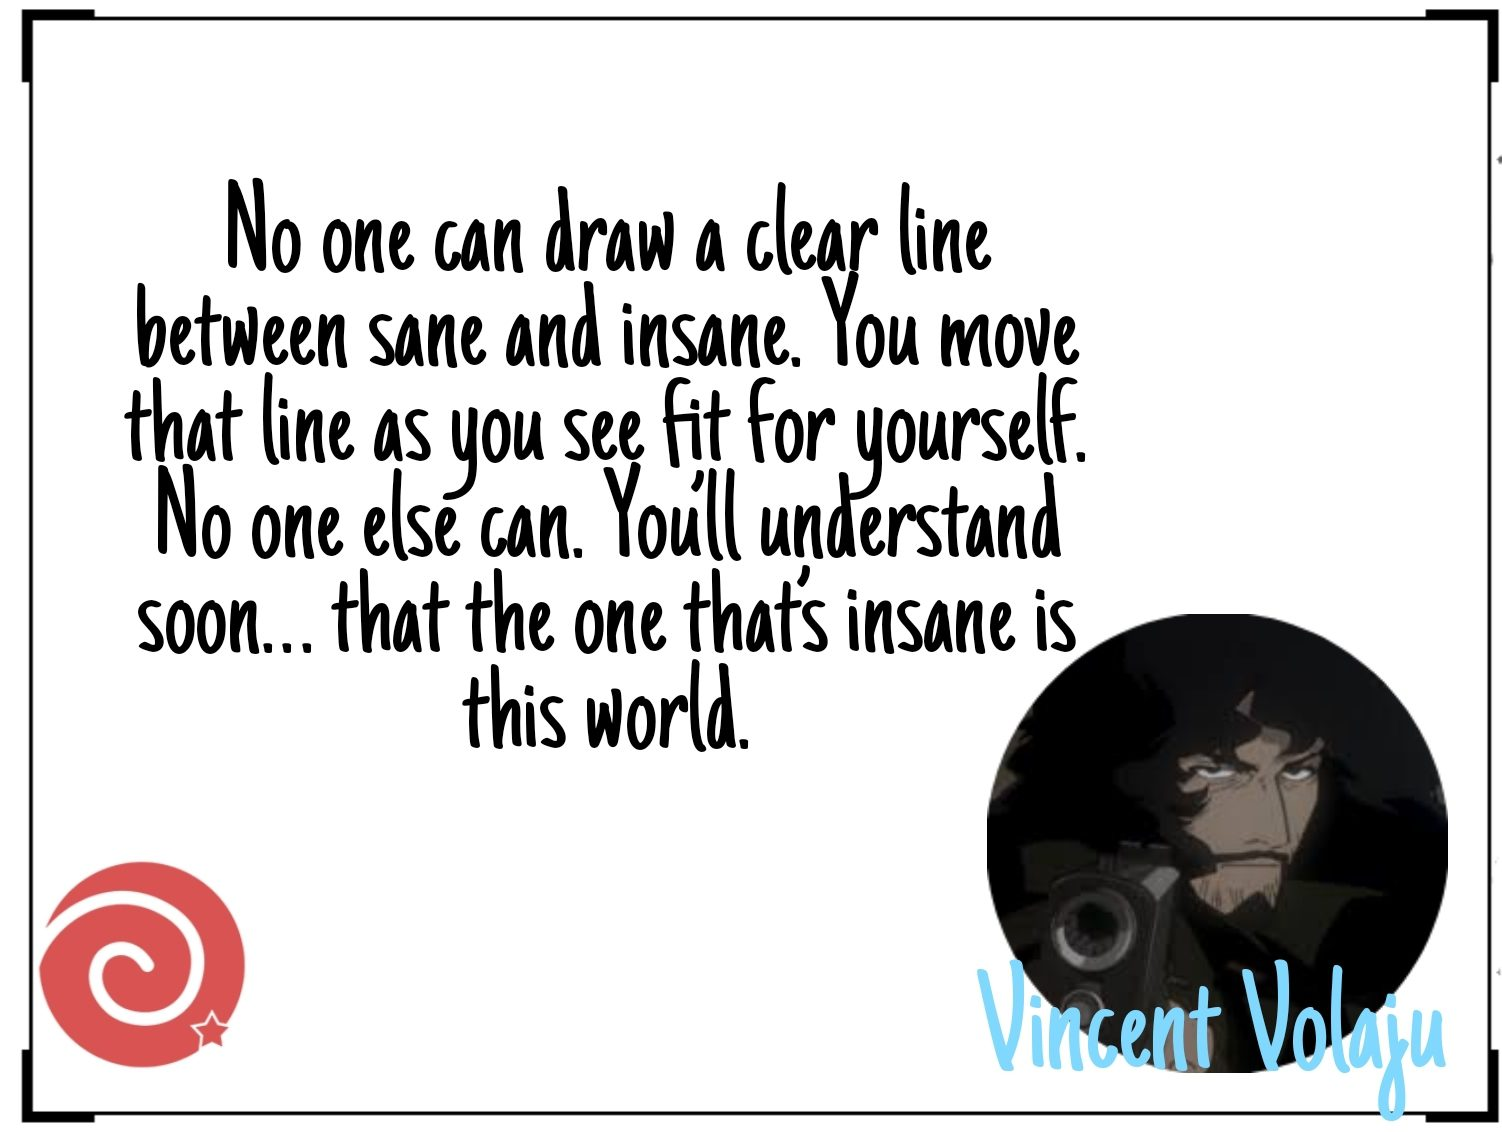 Quotes by Vincent Volaju